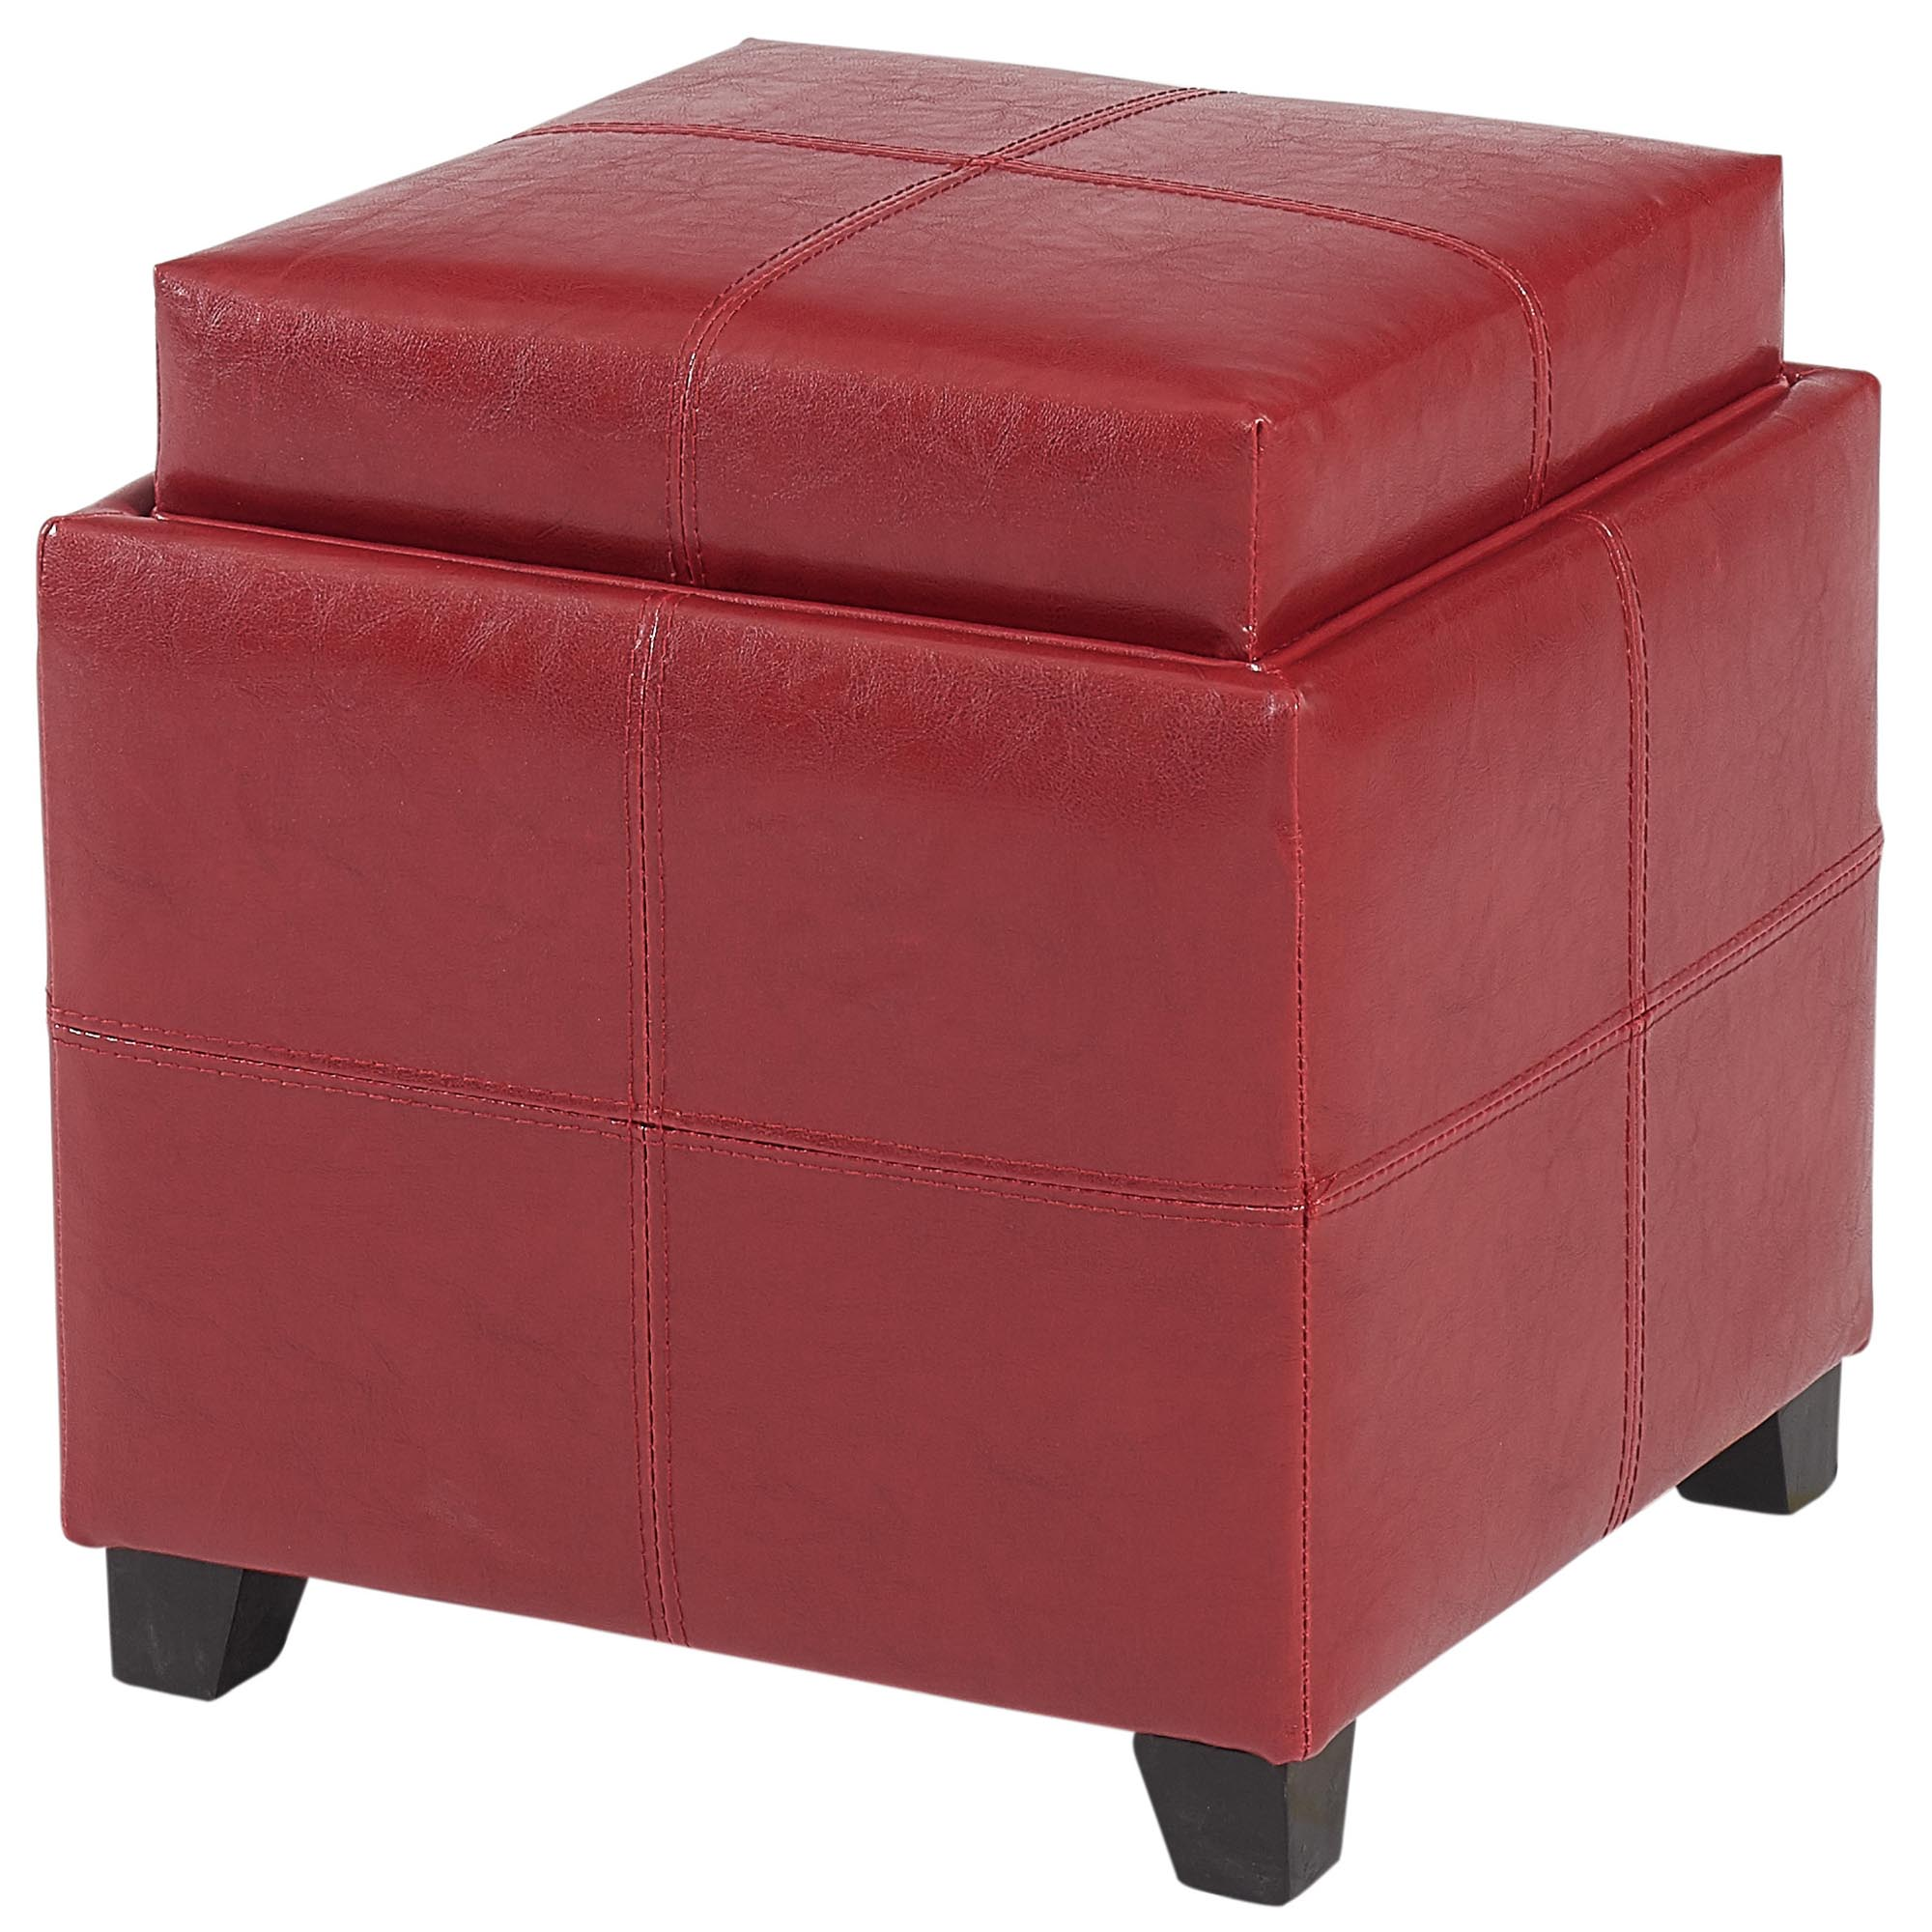 Modern Faux Leather Square Storage Ottoman in Red